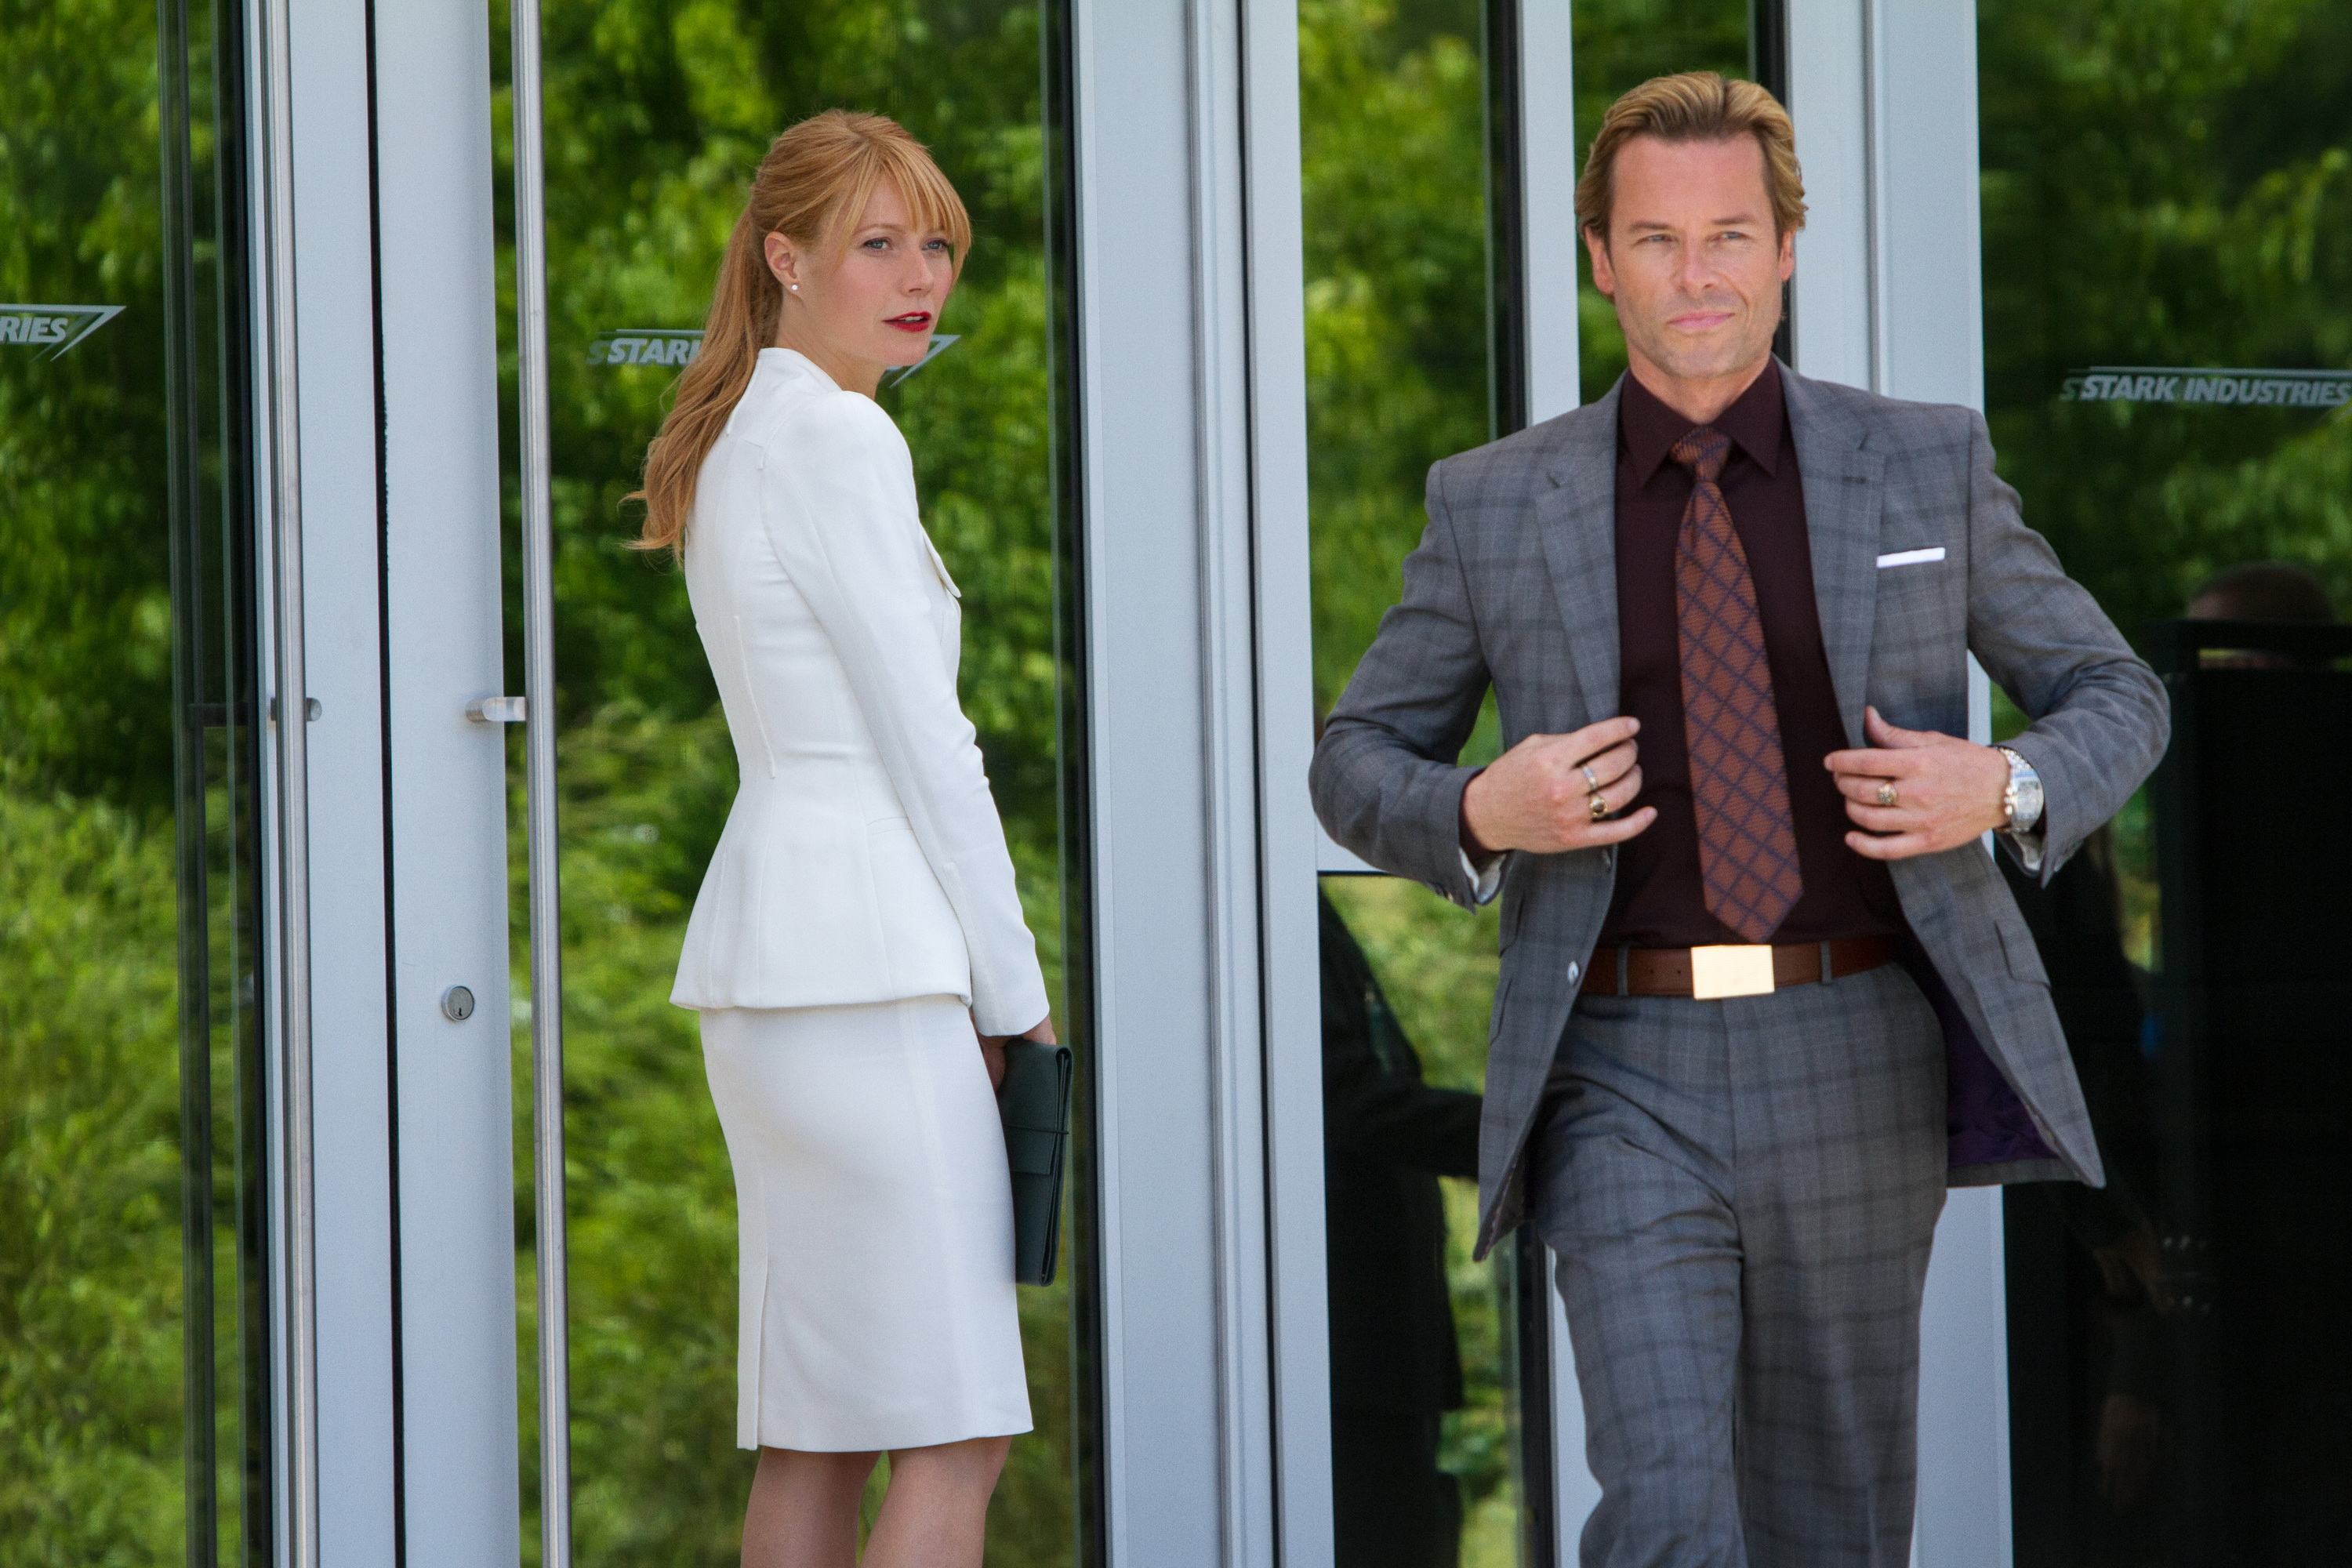 Iron Man 3 Gwyneth Paltrow as Pepper Potts and Guy Peace as Aldrich Killian